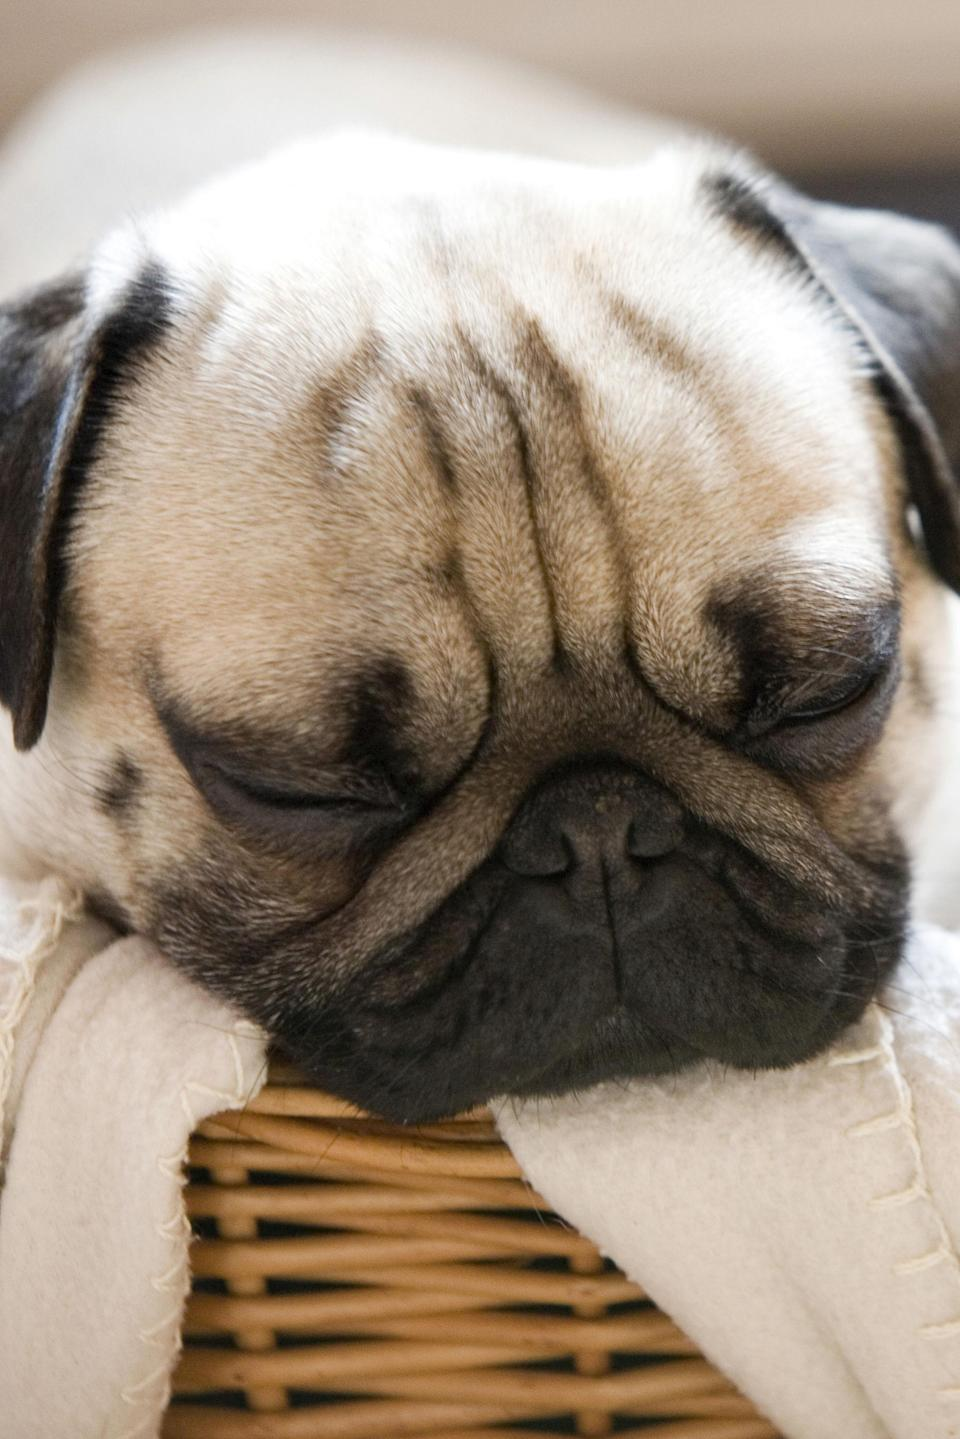 The 15 Laziest Dog Breeds That Are Total Couch Potatoes